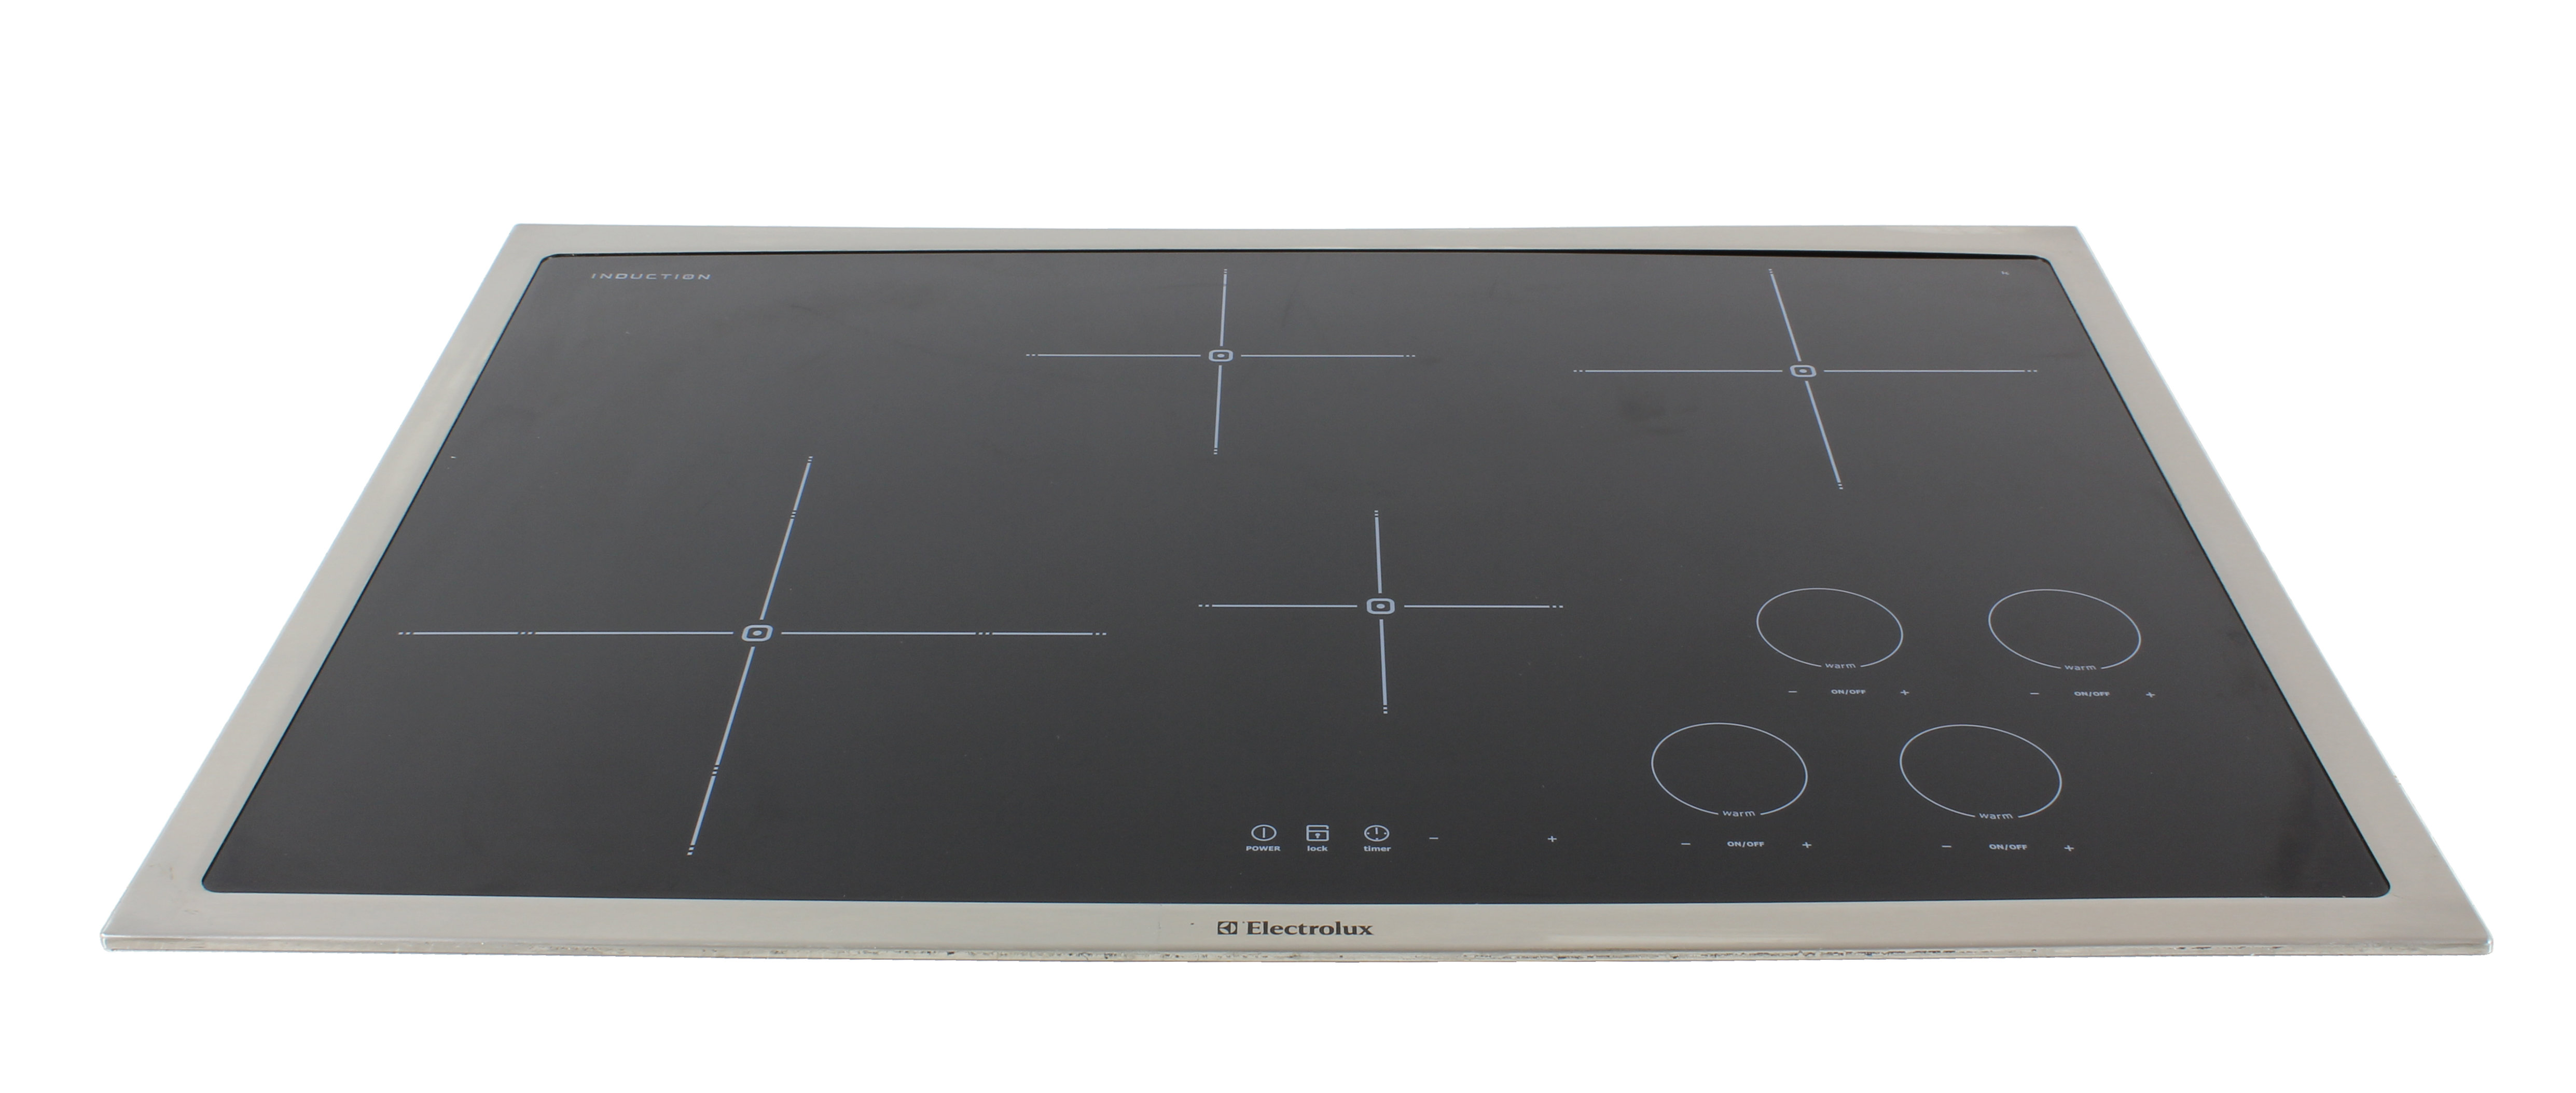 electrolux ew30ic60ls 30 inch induction cooktop reviewed. Black Bedroom Furniture Sets. Home Design Ideas